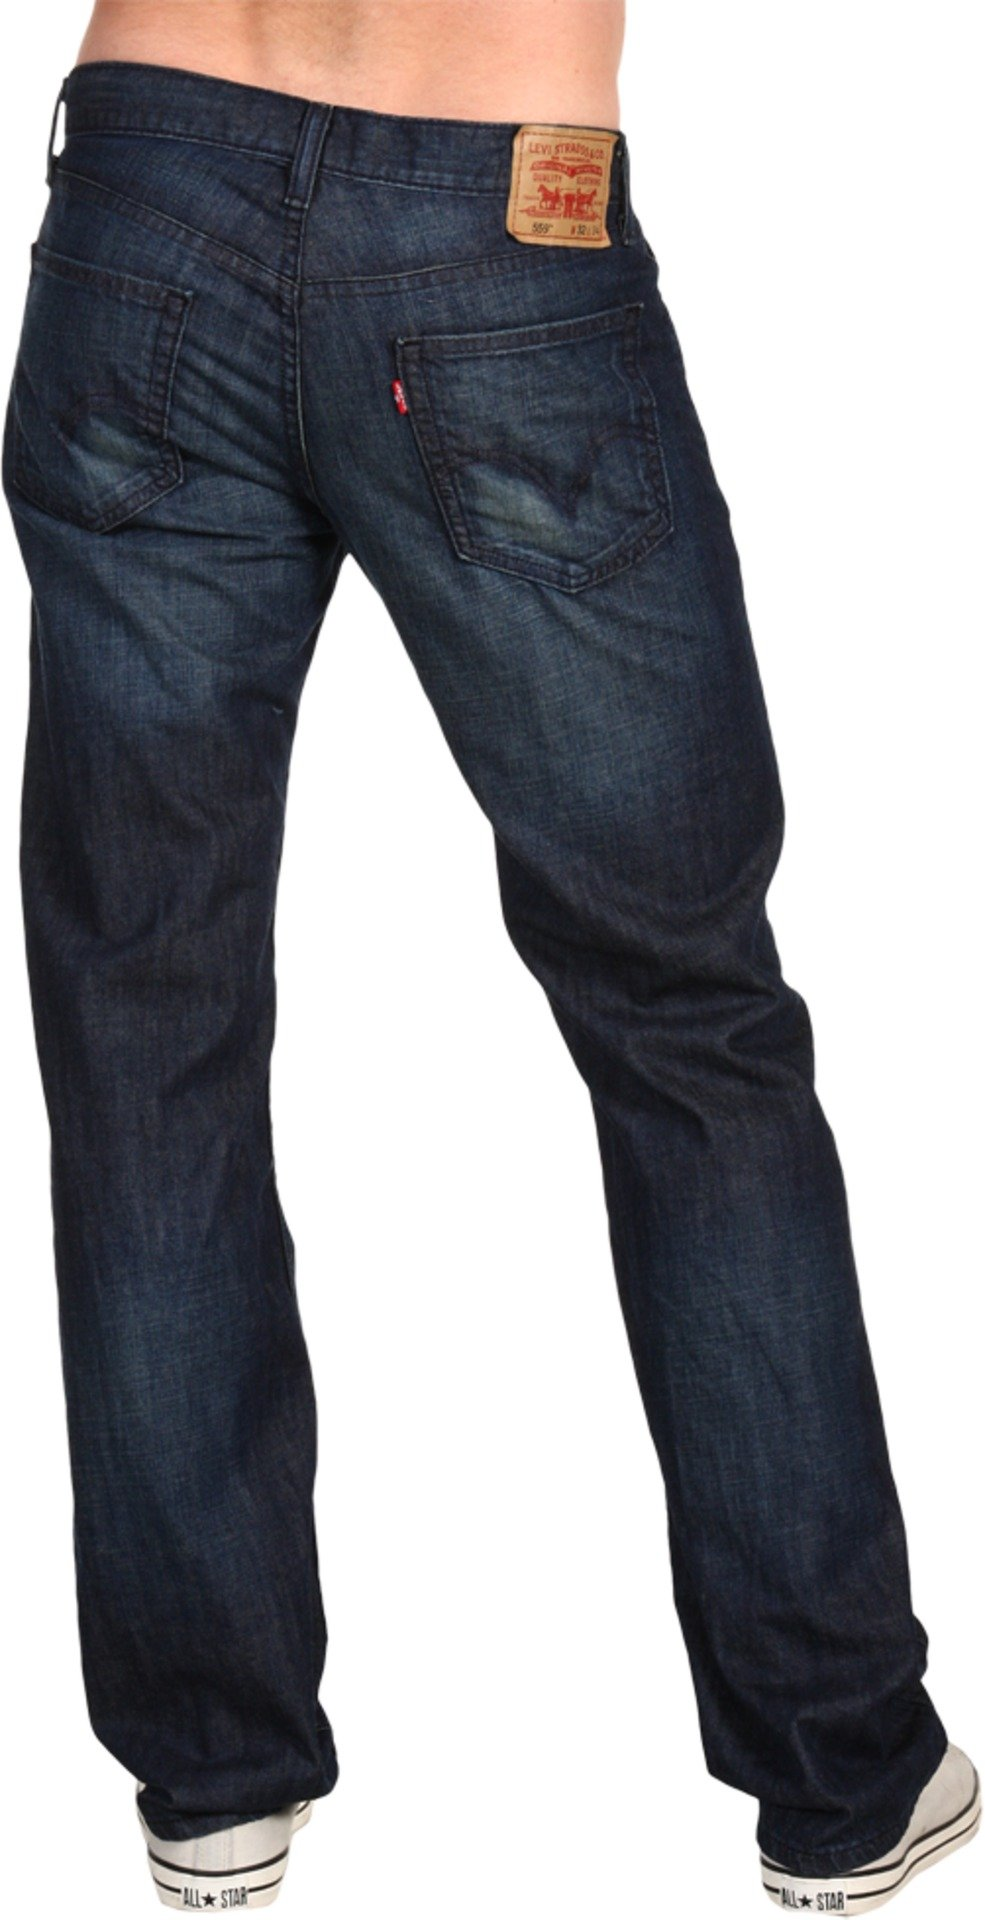 Levi's Men's 559 Relaxed Straight Fit Jean - 40W x 30L - Andi